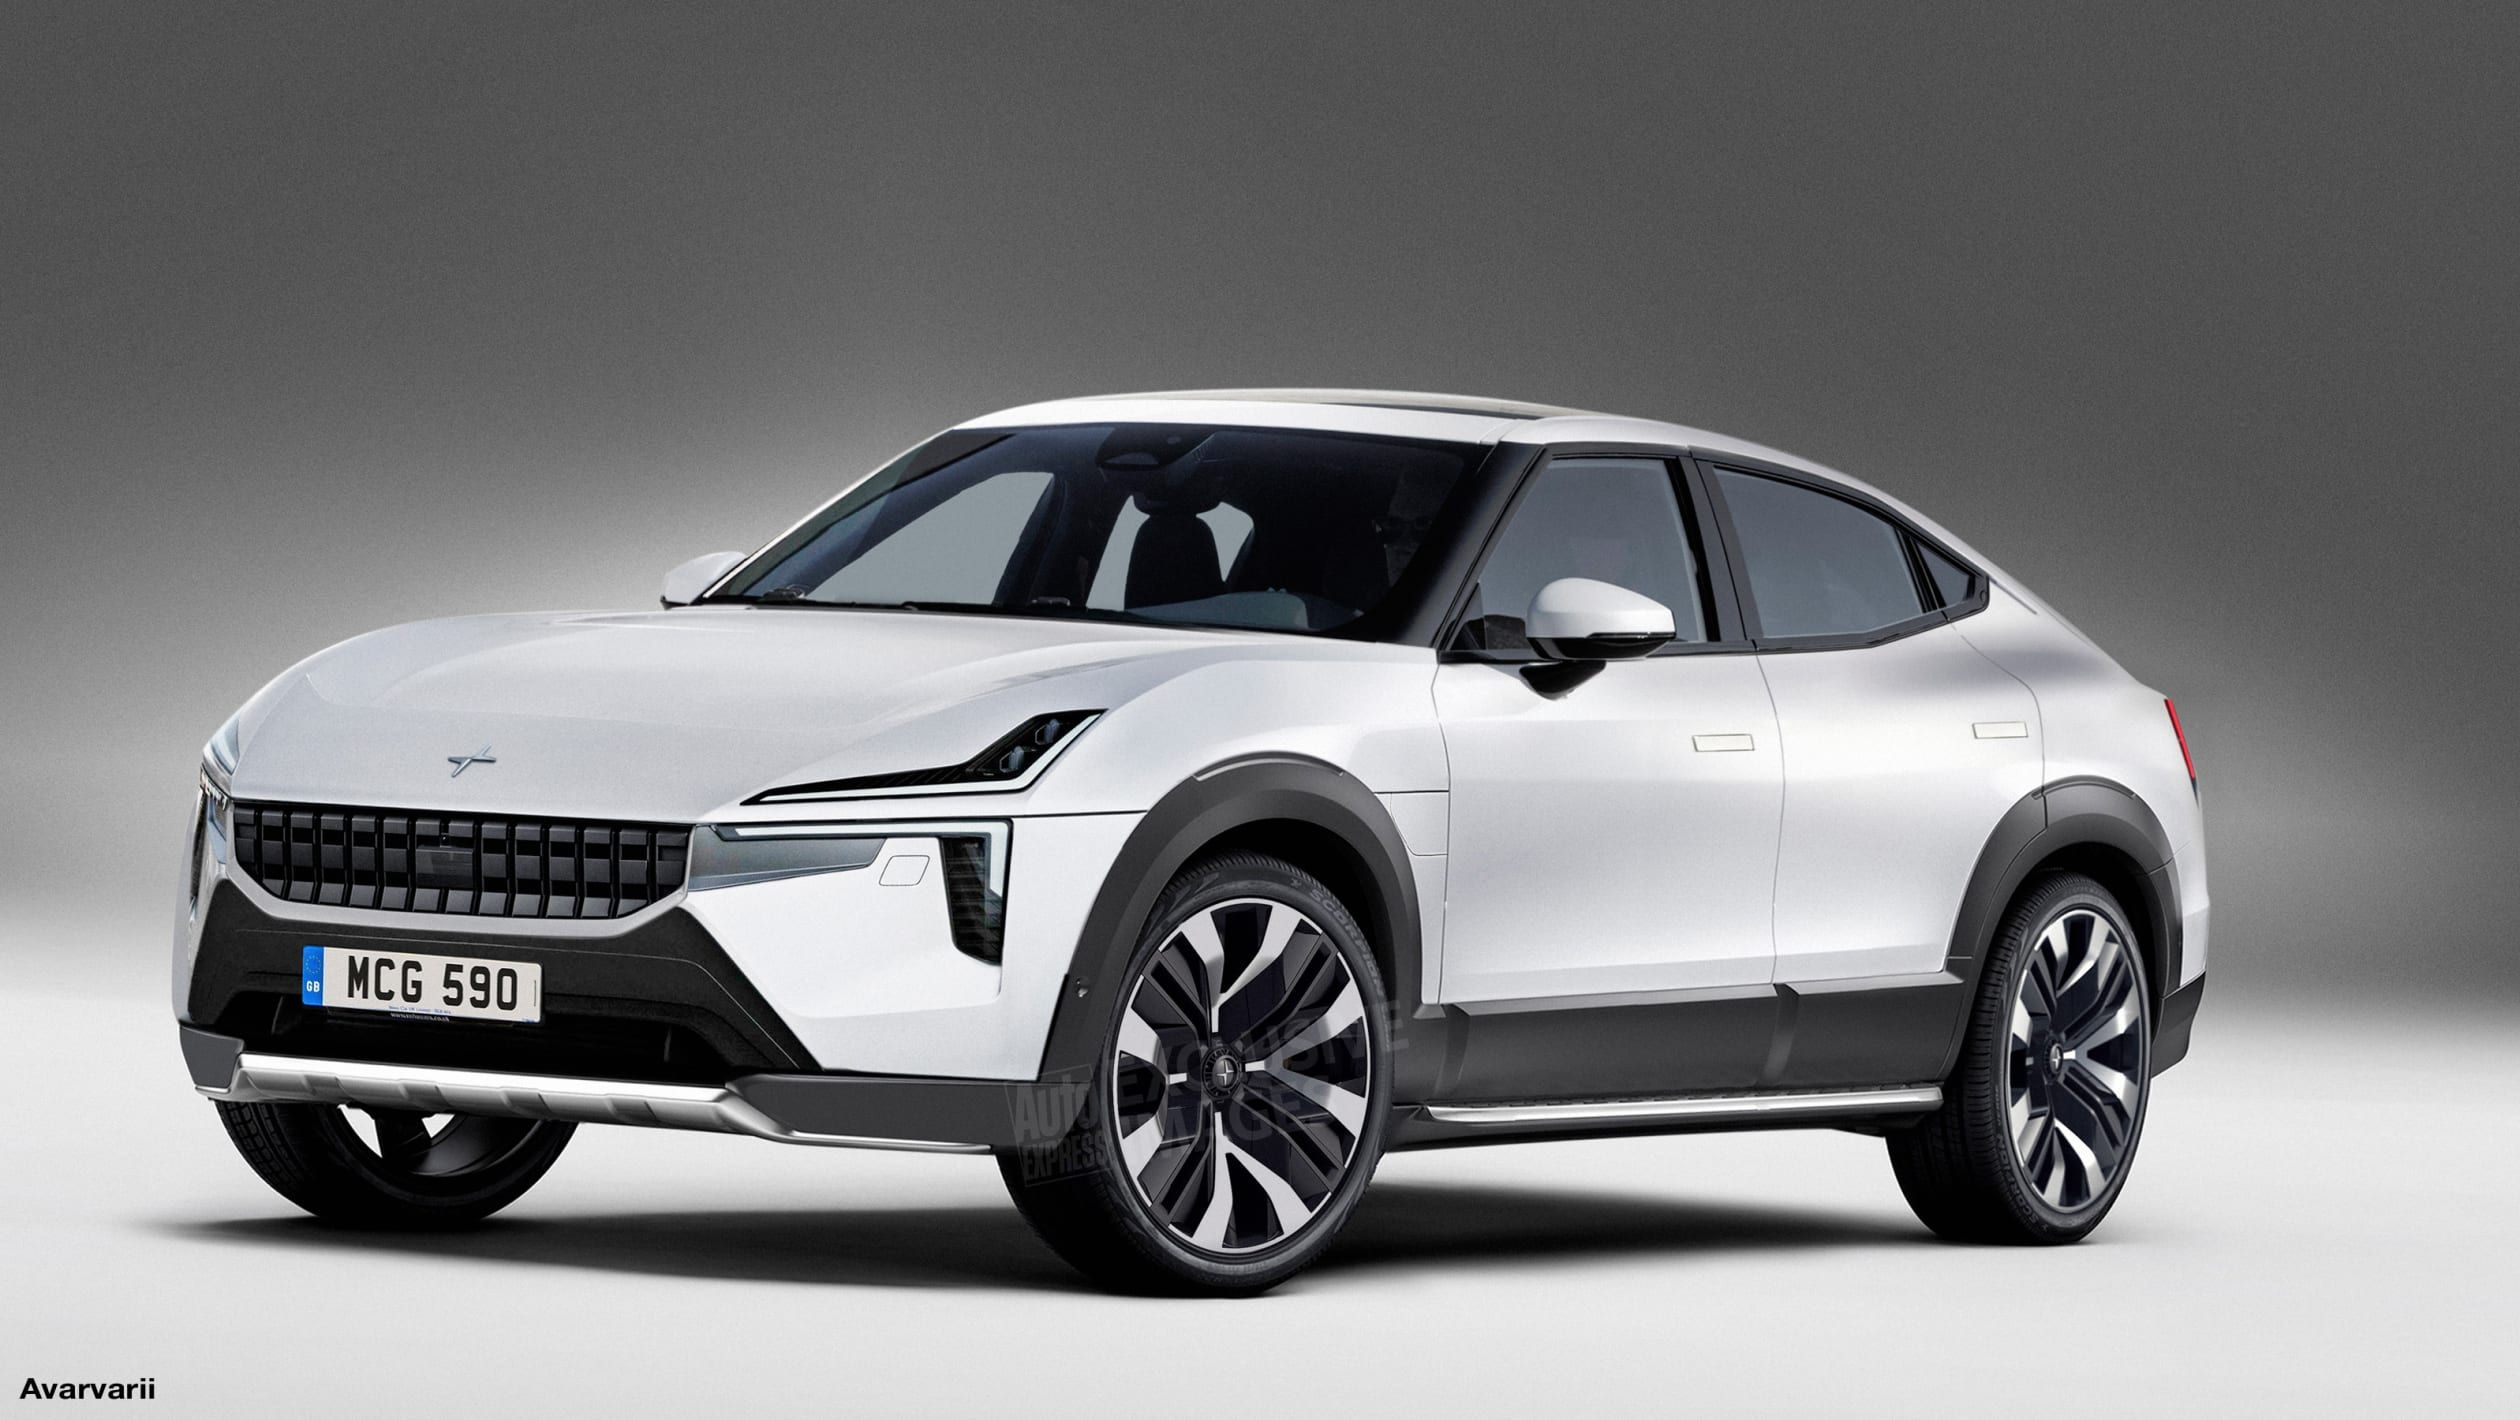 Pin by olivier on Vehicles in 2020 Suv, Pole star, New bmw